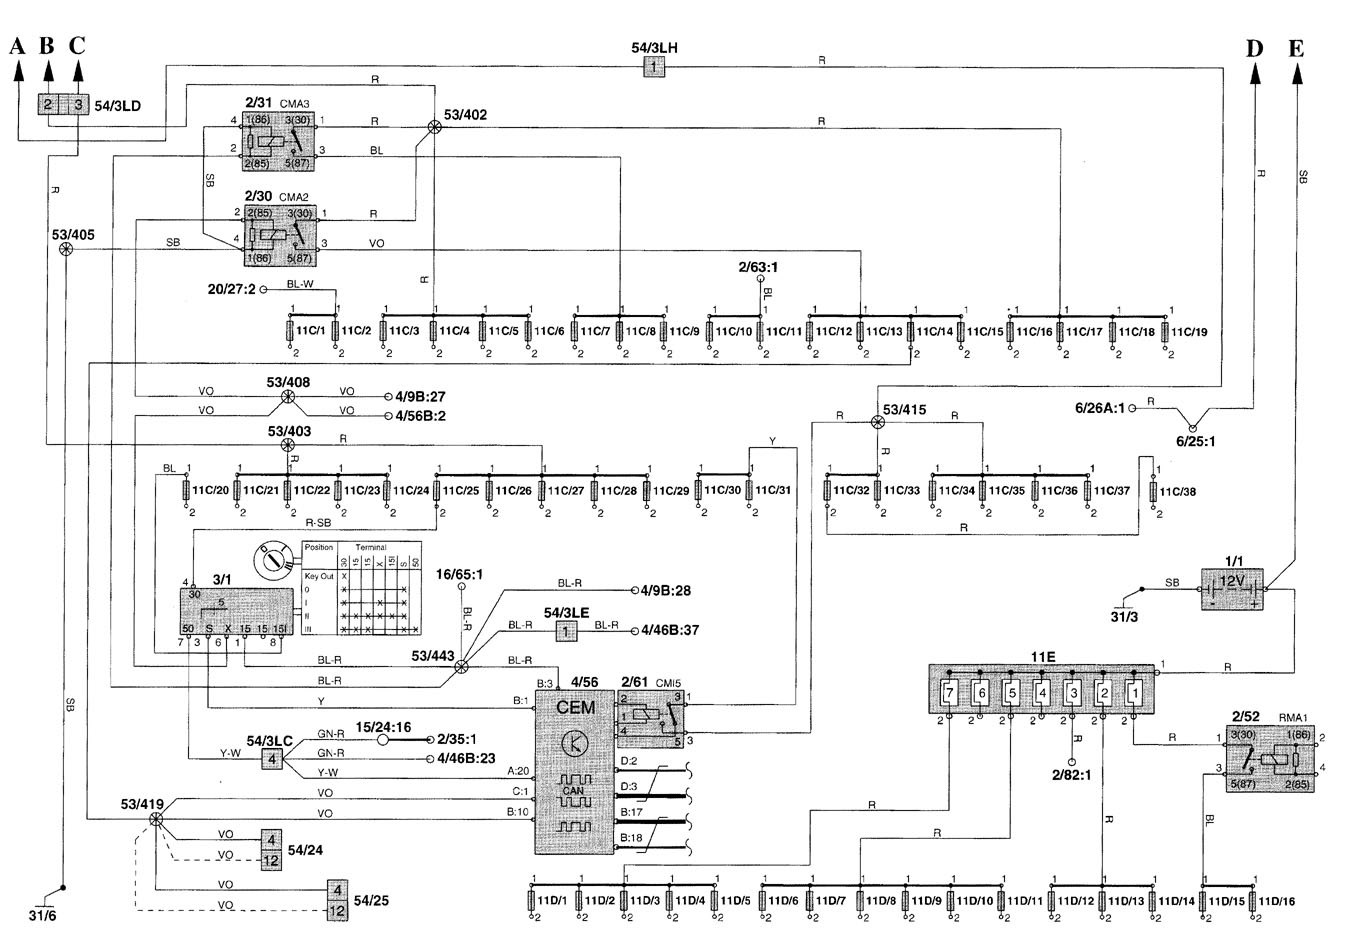 volvo v70 wiring diagram of 3 way switch 2001 diagrams power distribution